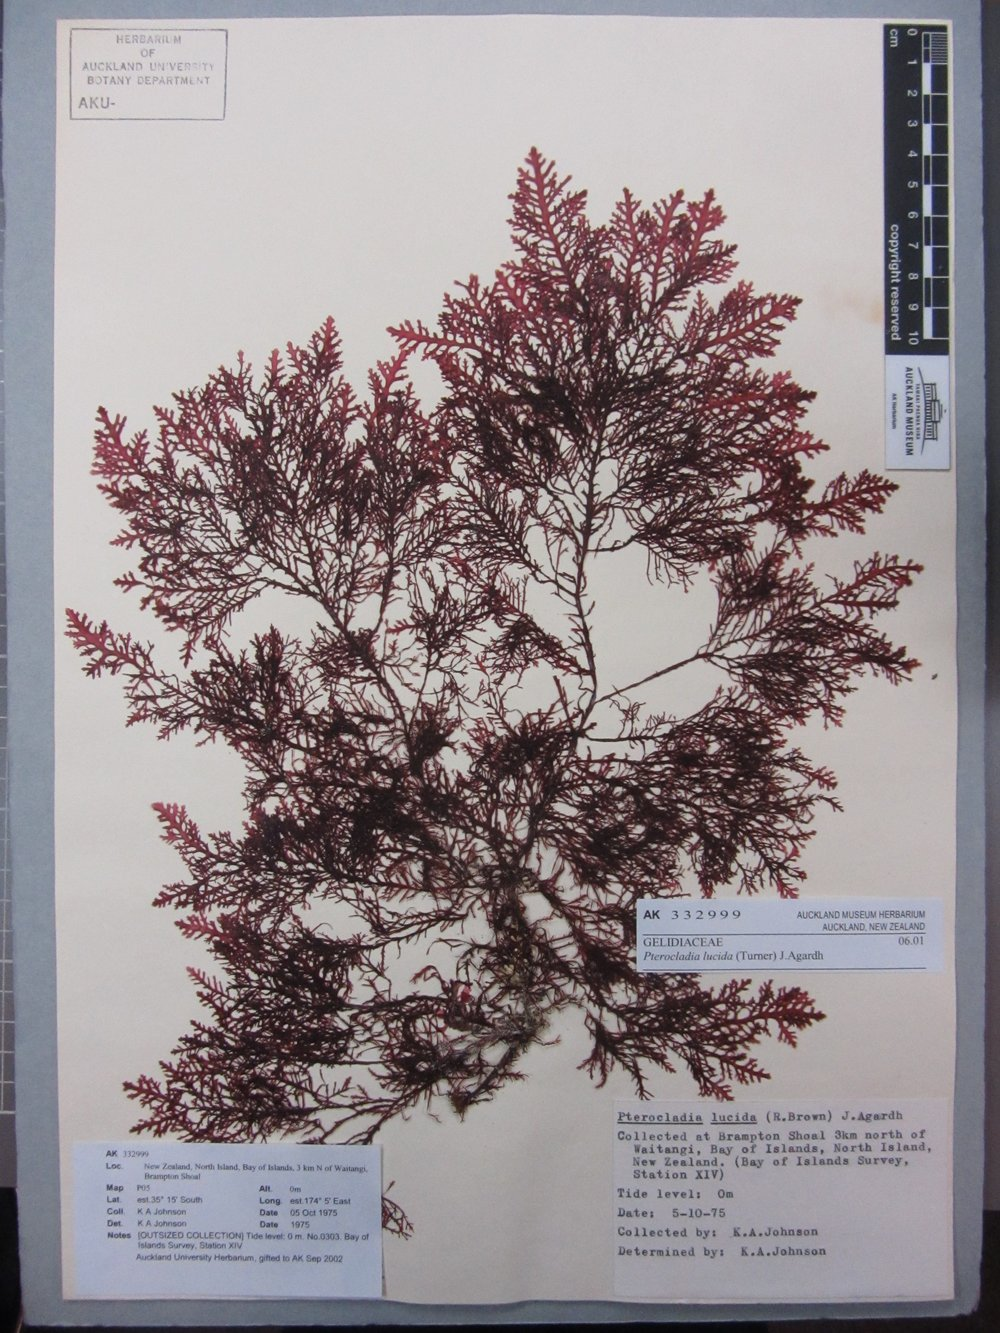 Pterocladia Lucida  , the red seaweed used for making agar.